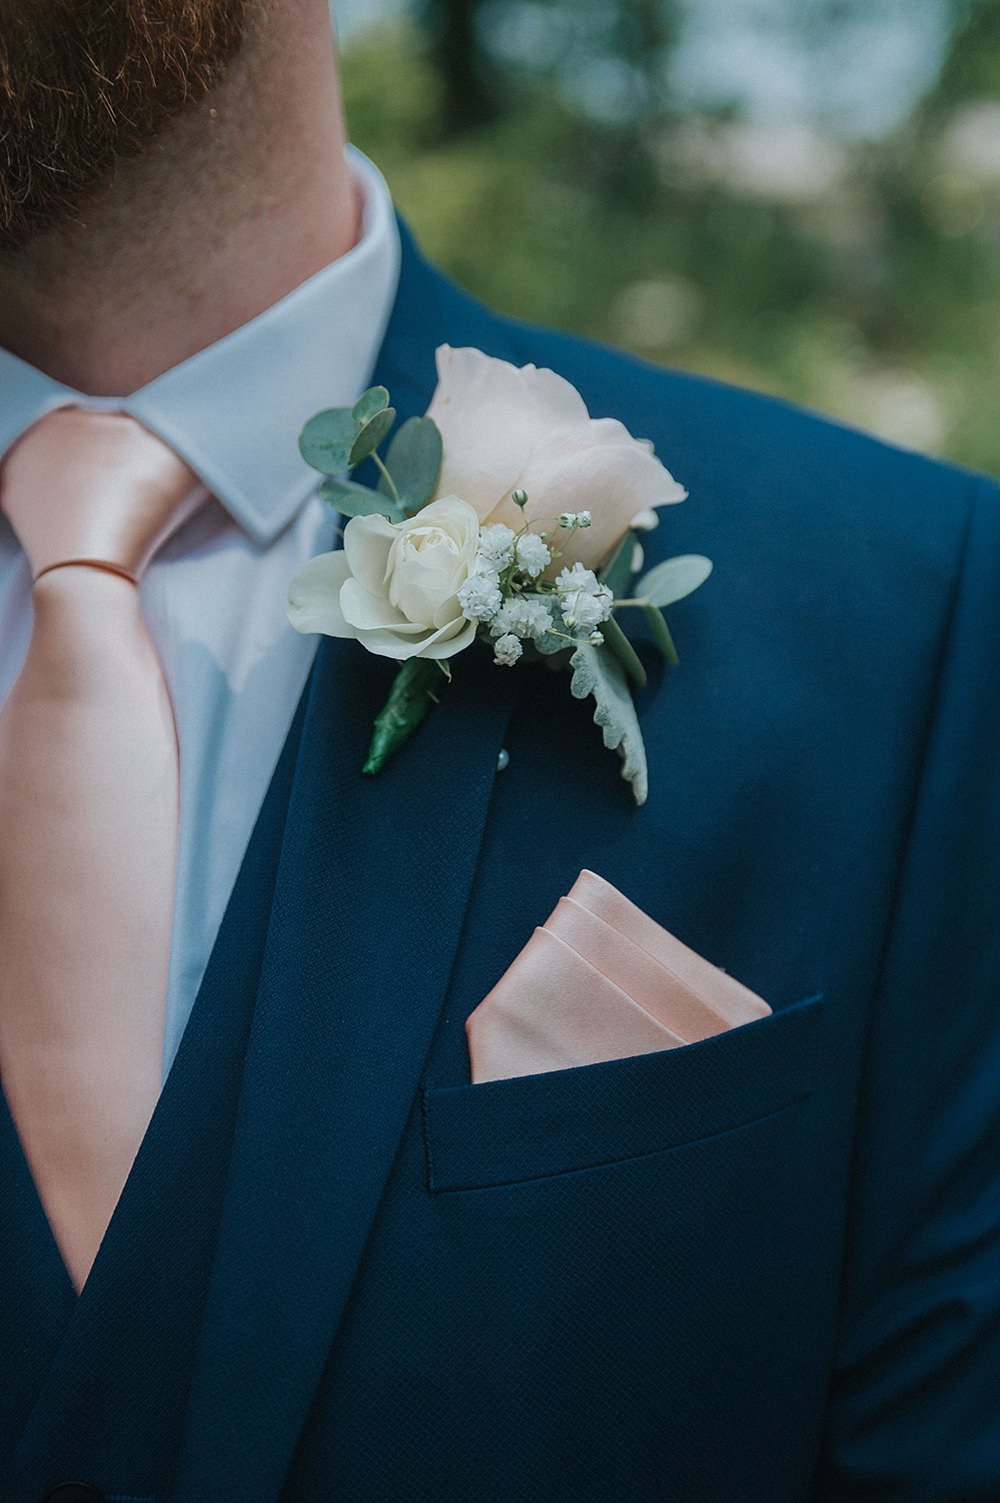 Groom Groomsmen Suit Peach Ties Buttonhole Flowers Houchins Farm Wedding Julia and You Photography